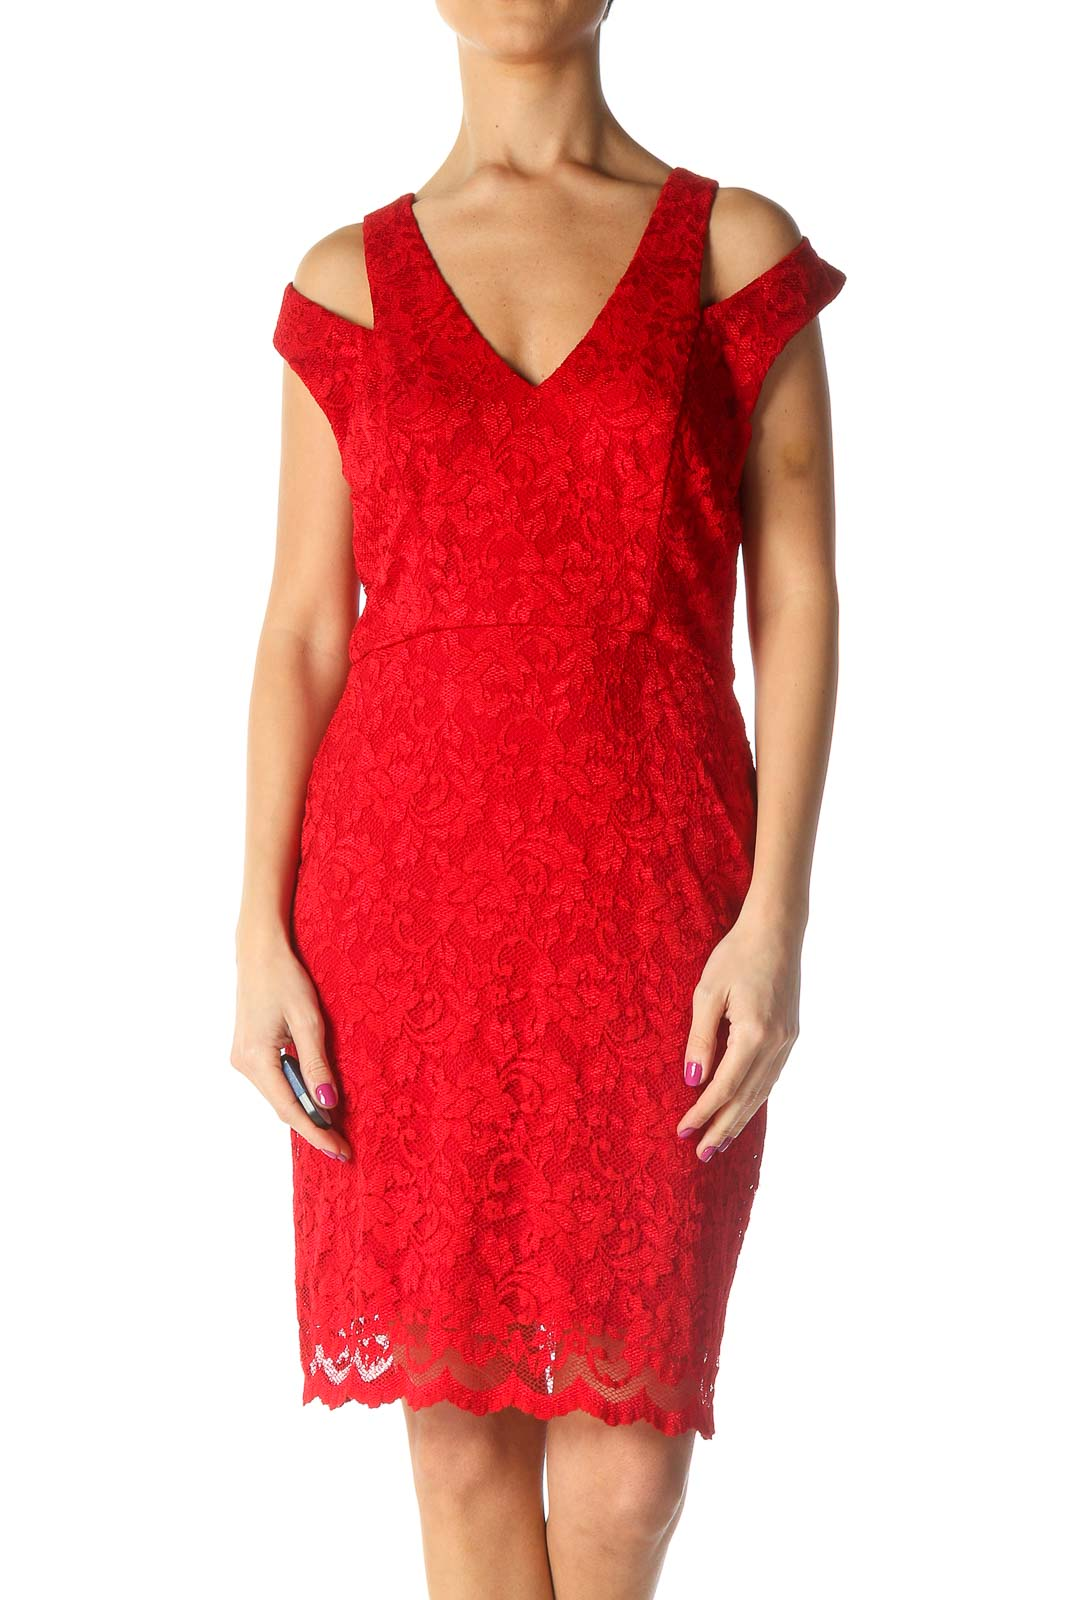 Red Lace Retro Sheath Dress Front